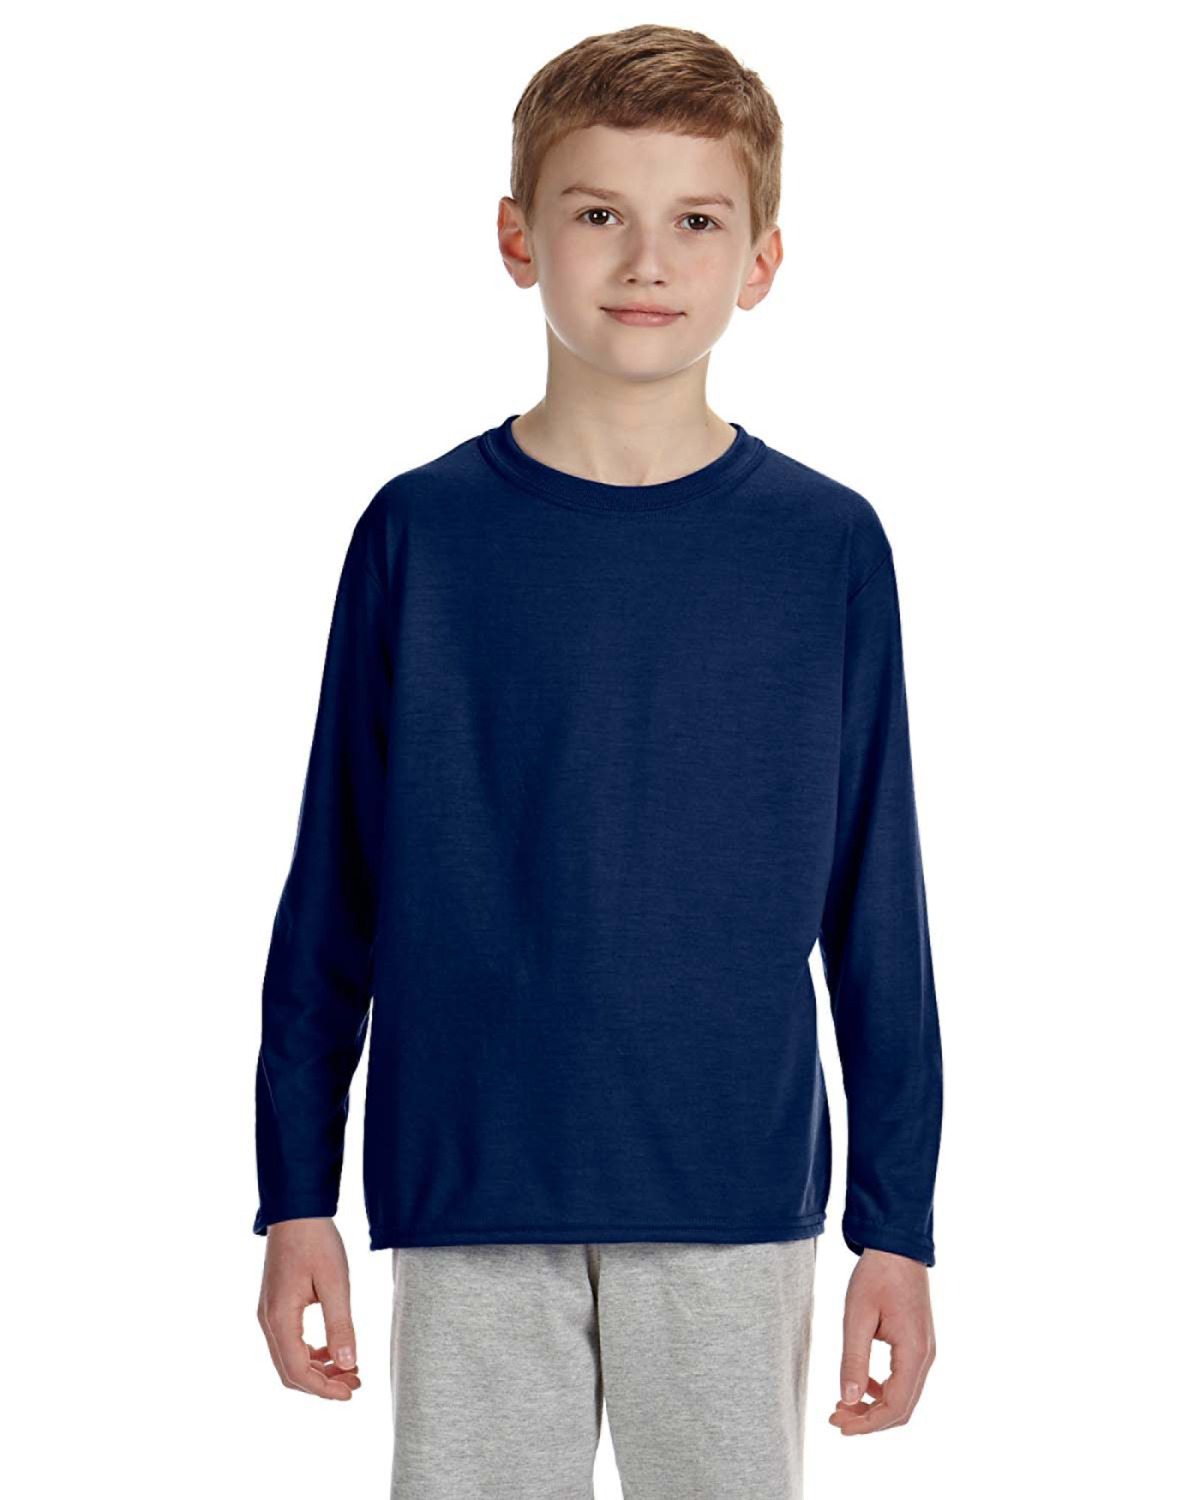 Youth Performance® 5 oz. Long-Sleeve T-Shirt